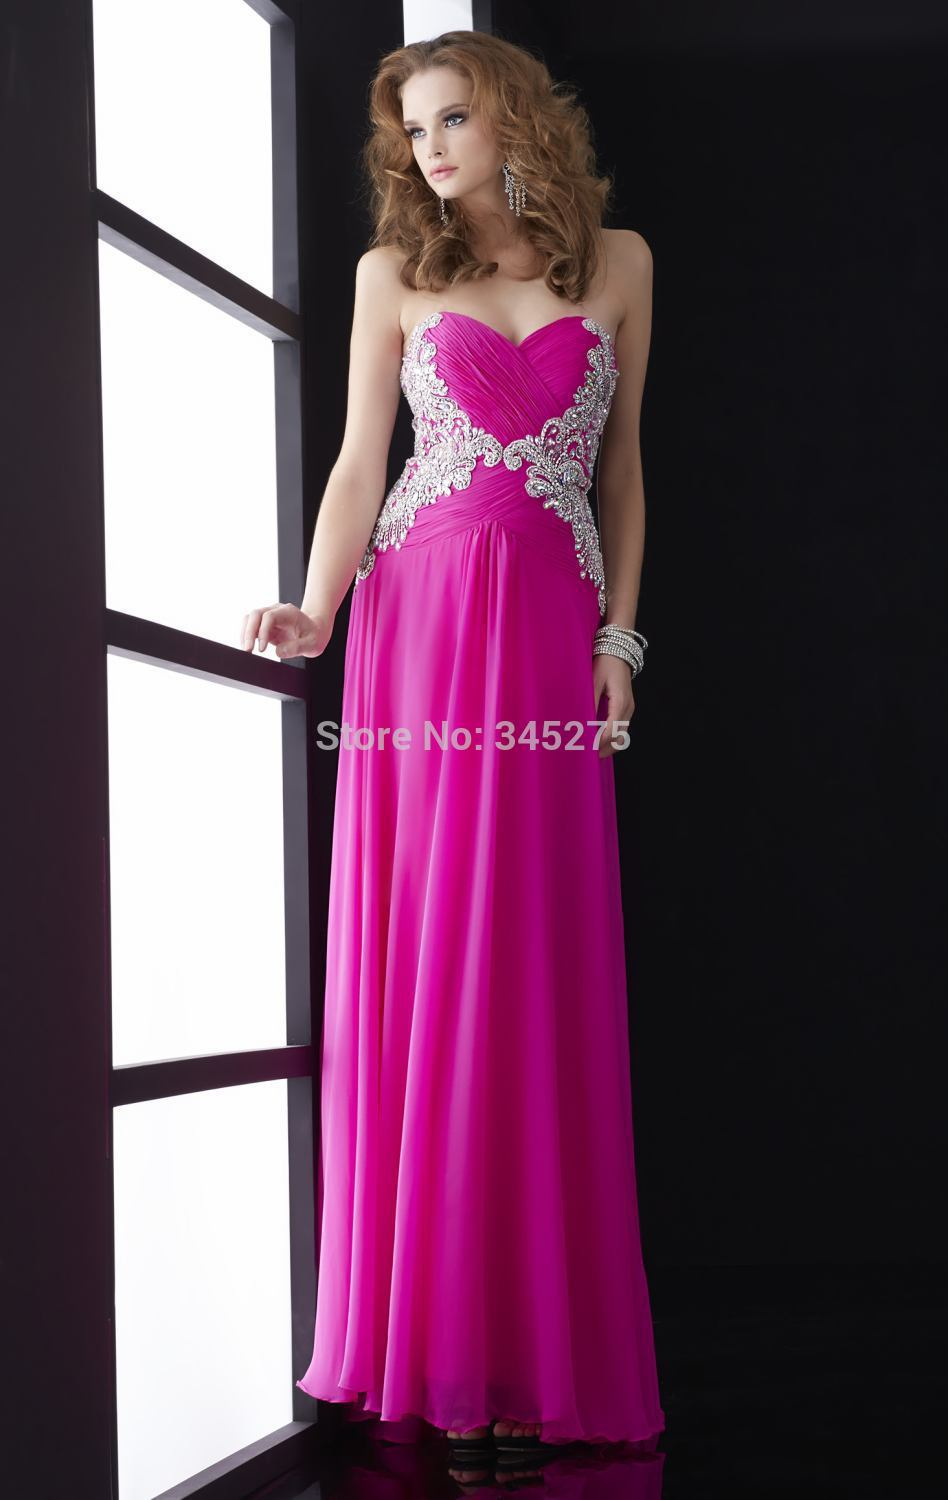 Lovely chiffon sweetheart ruched beaded floral pattern bodice full length soft skirt fuschia prom dresses 2014 night dress(China (Mainland))